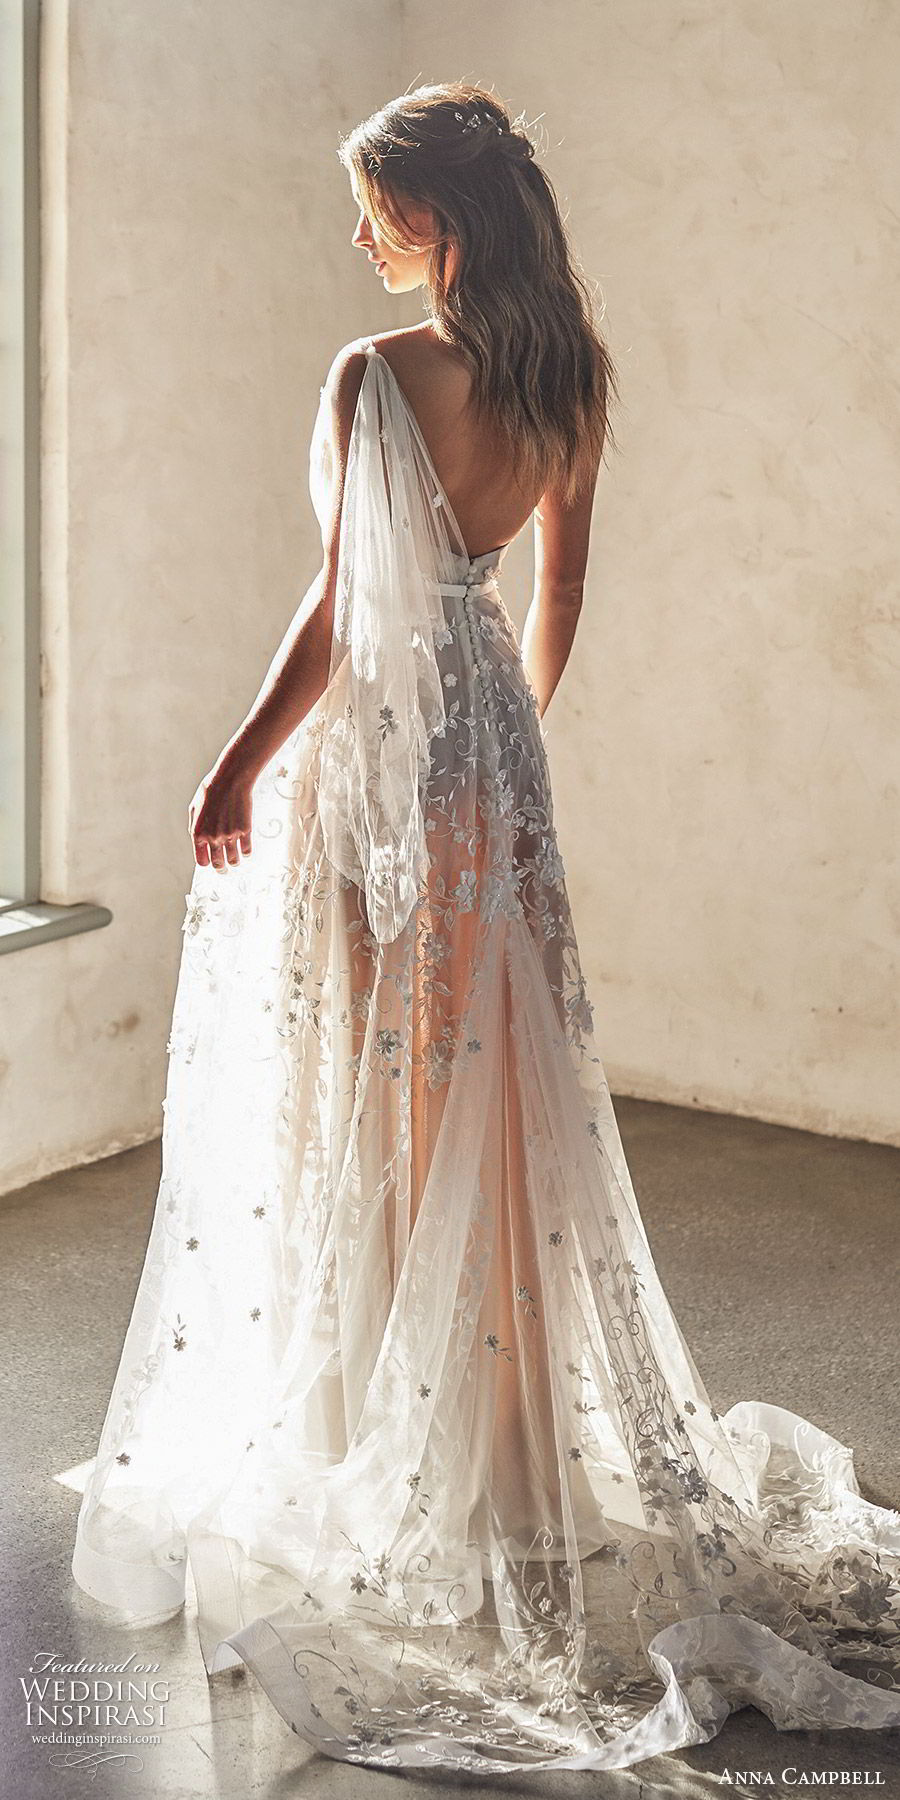 anna campbell 2020 bridal illusion one shoulder sweetheart ruched bodice fully embellished lace a line ball gown wedding dress (2) romantic boho blush color chapel train bv